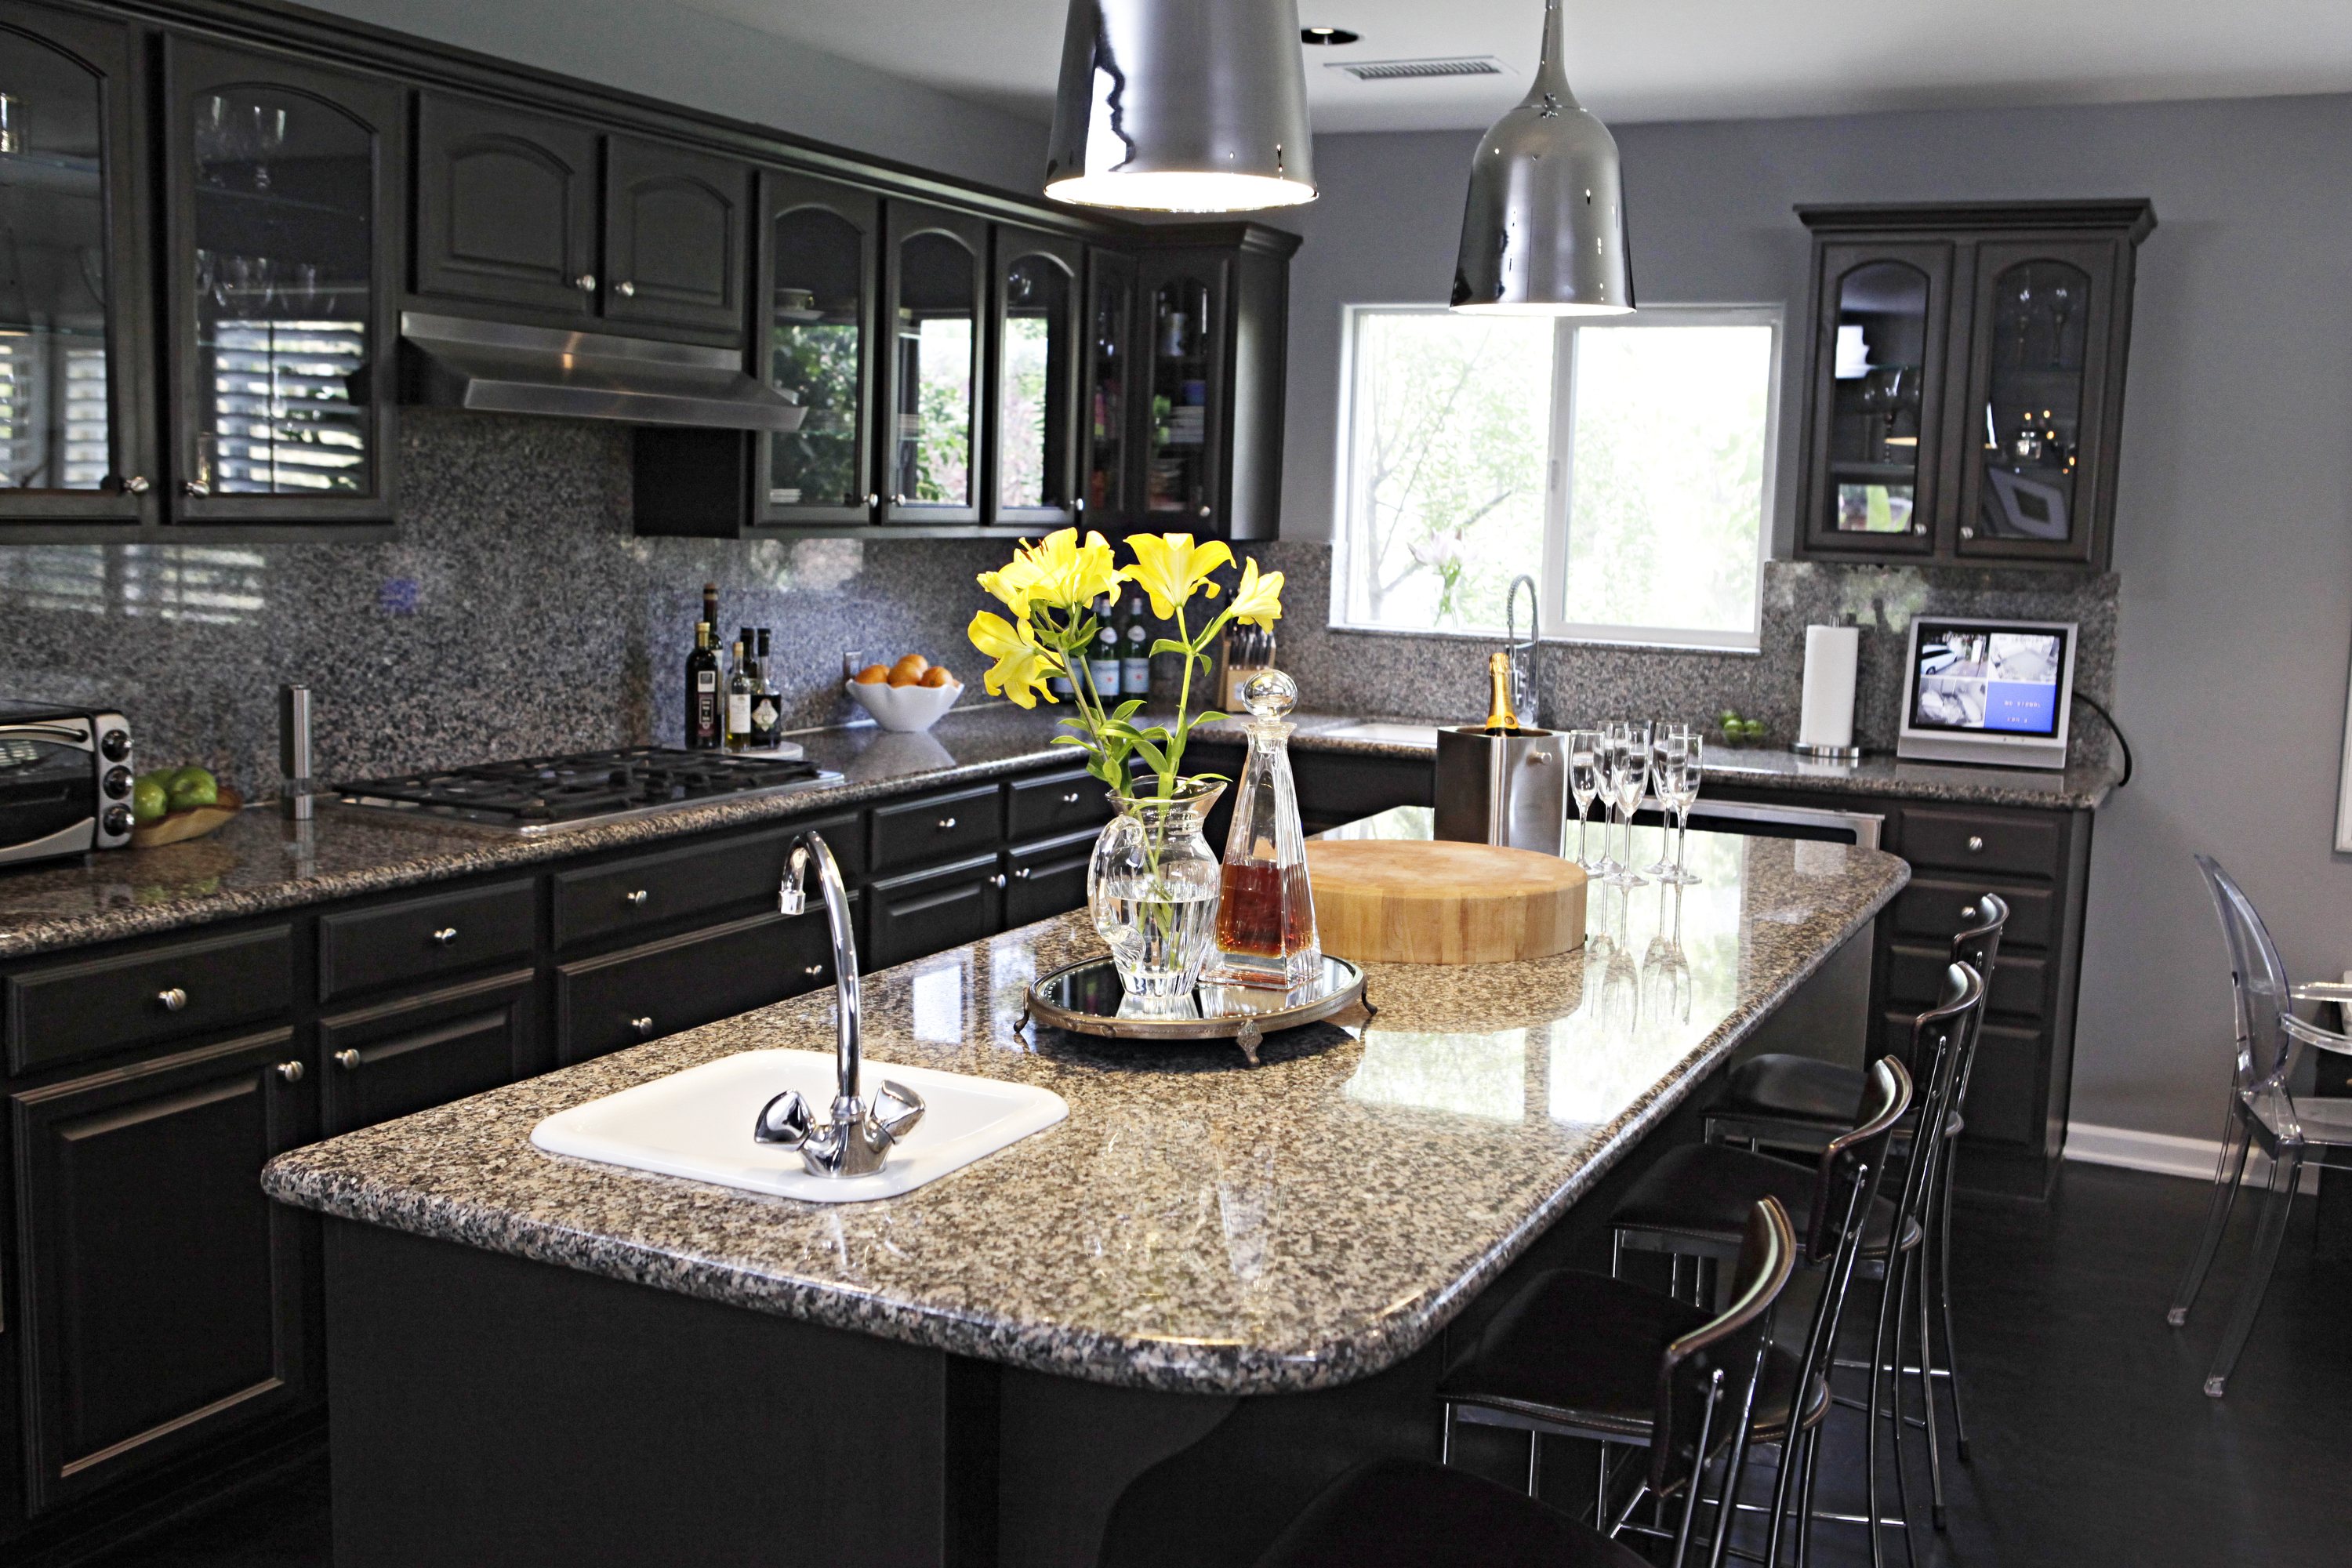 How Much Are Granite Countertops